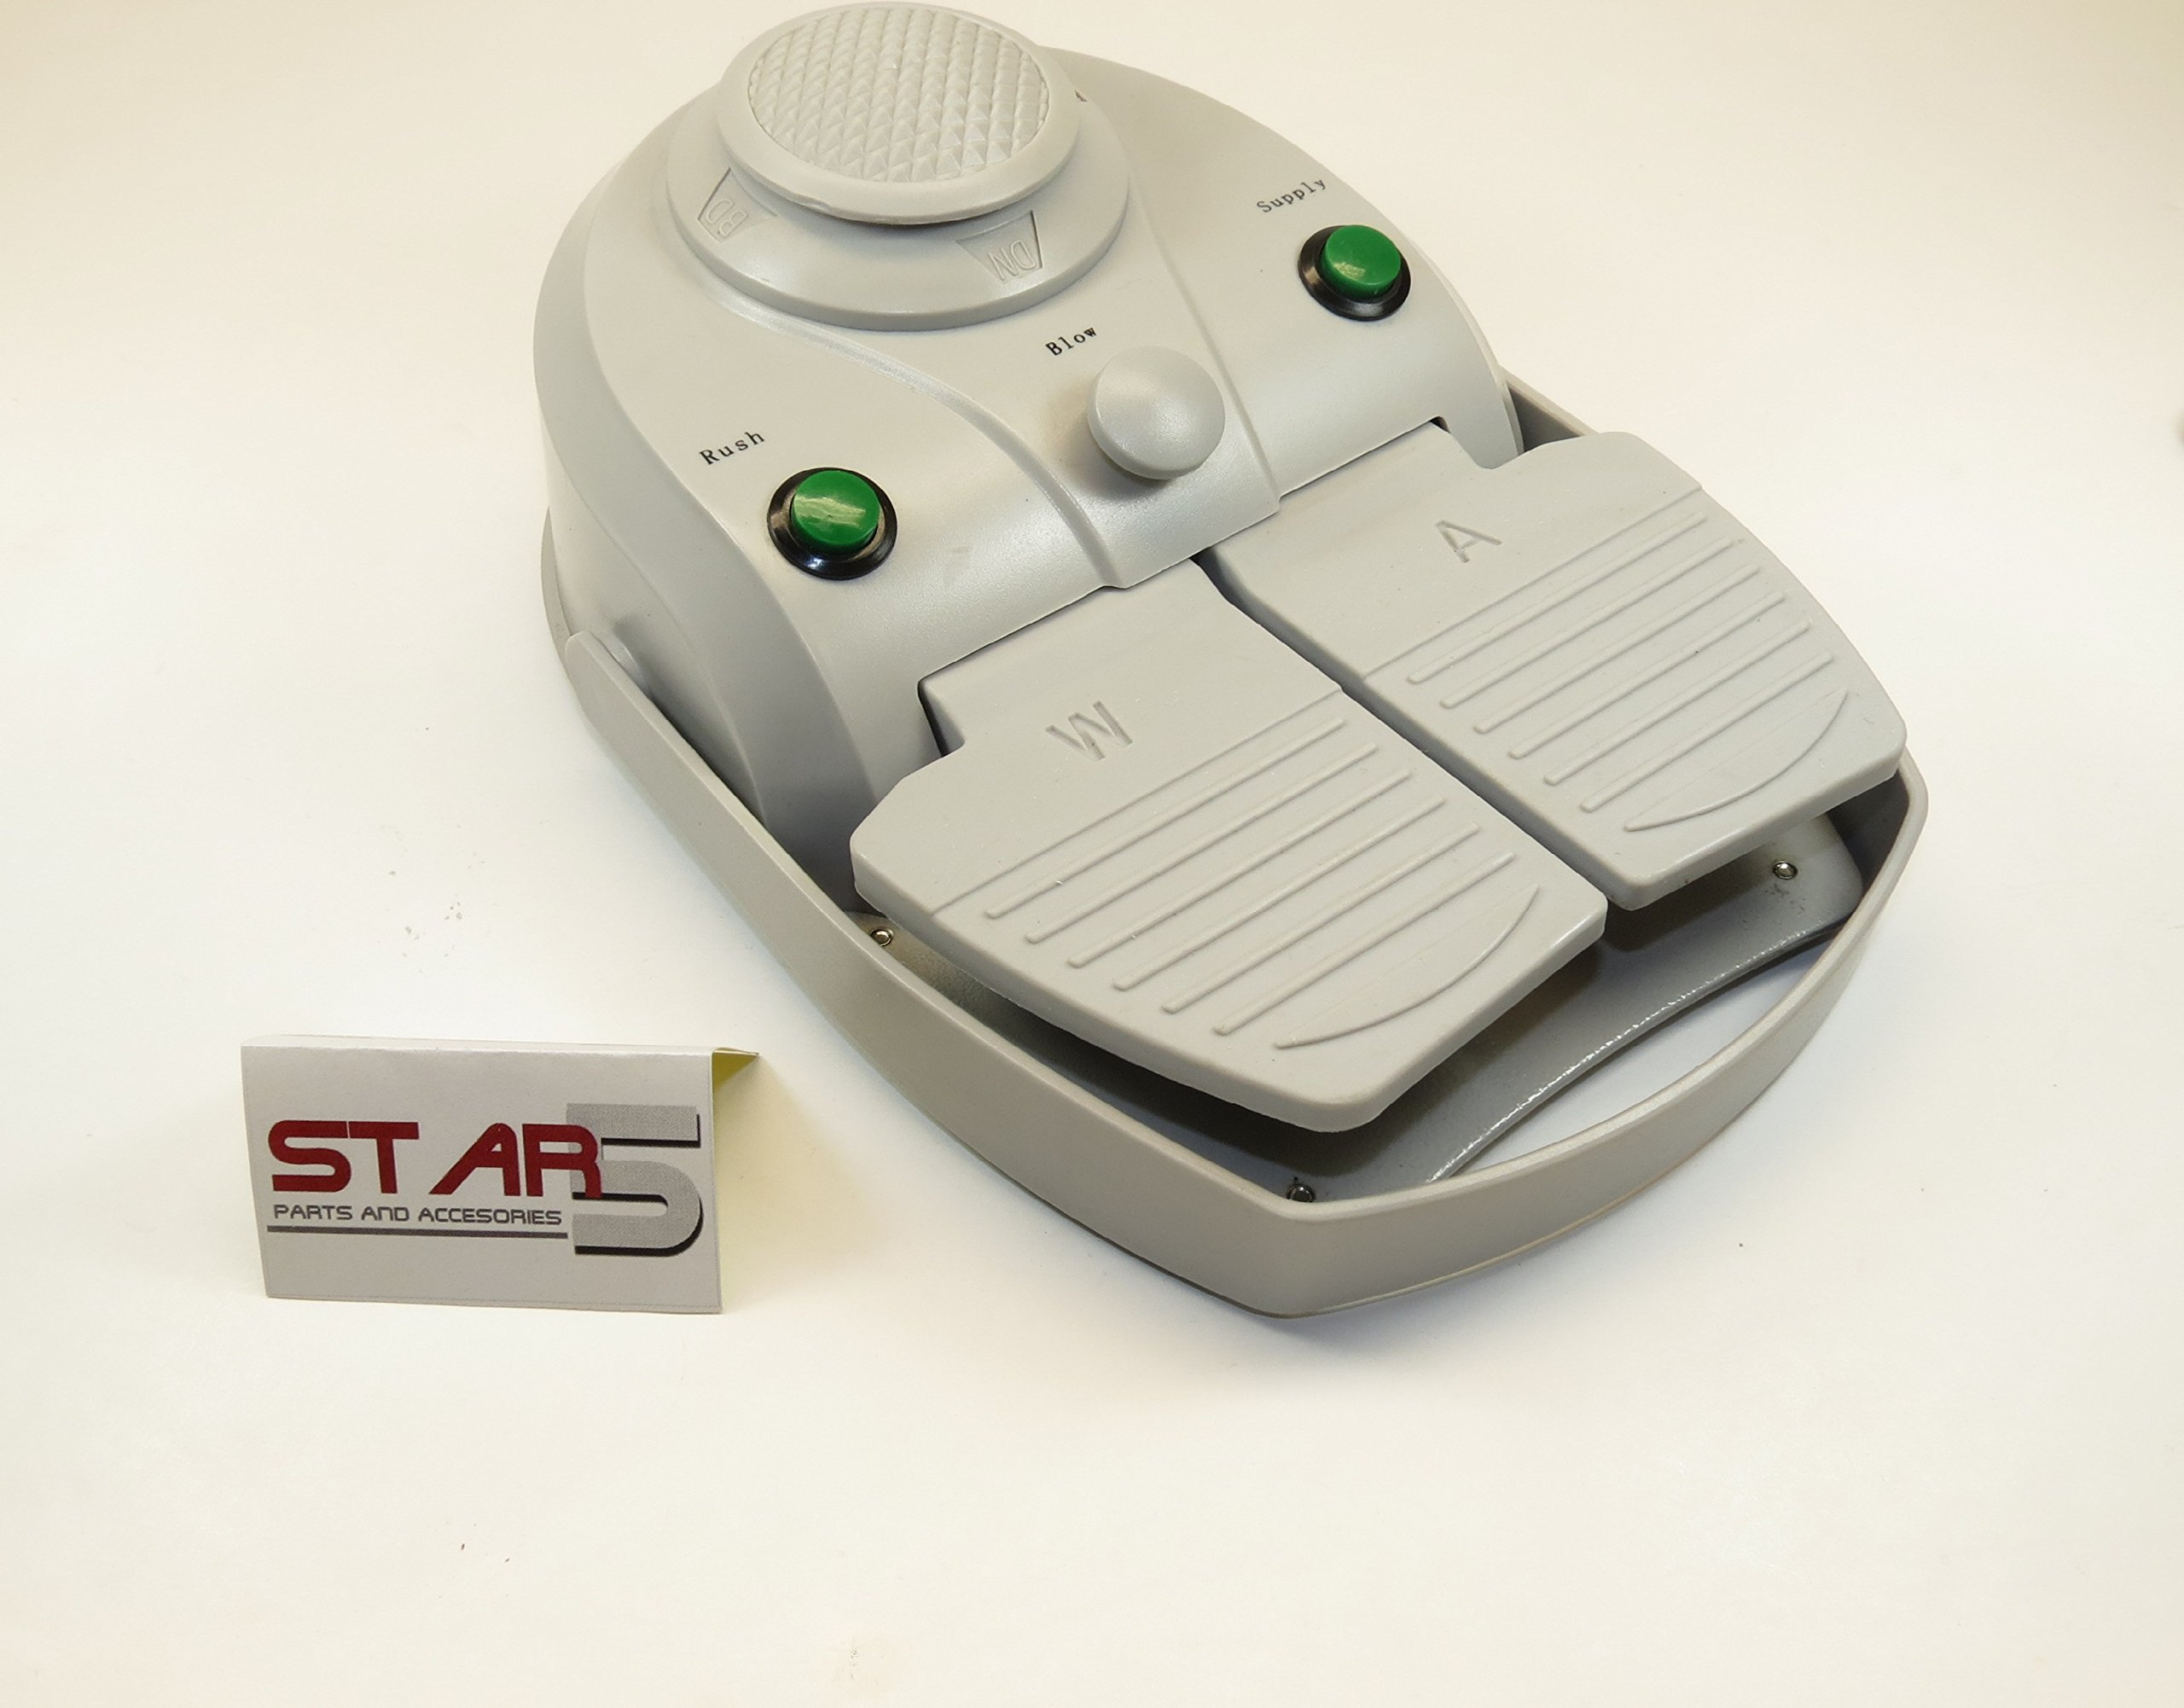 Foot Control Pedal Dental 2 Hole With 6 Functions Without Tubing B2 STAR5 Original